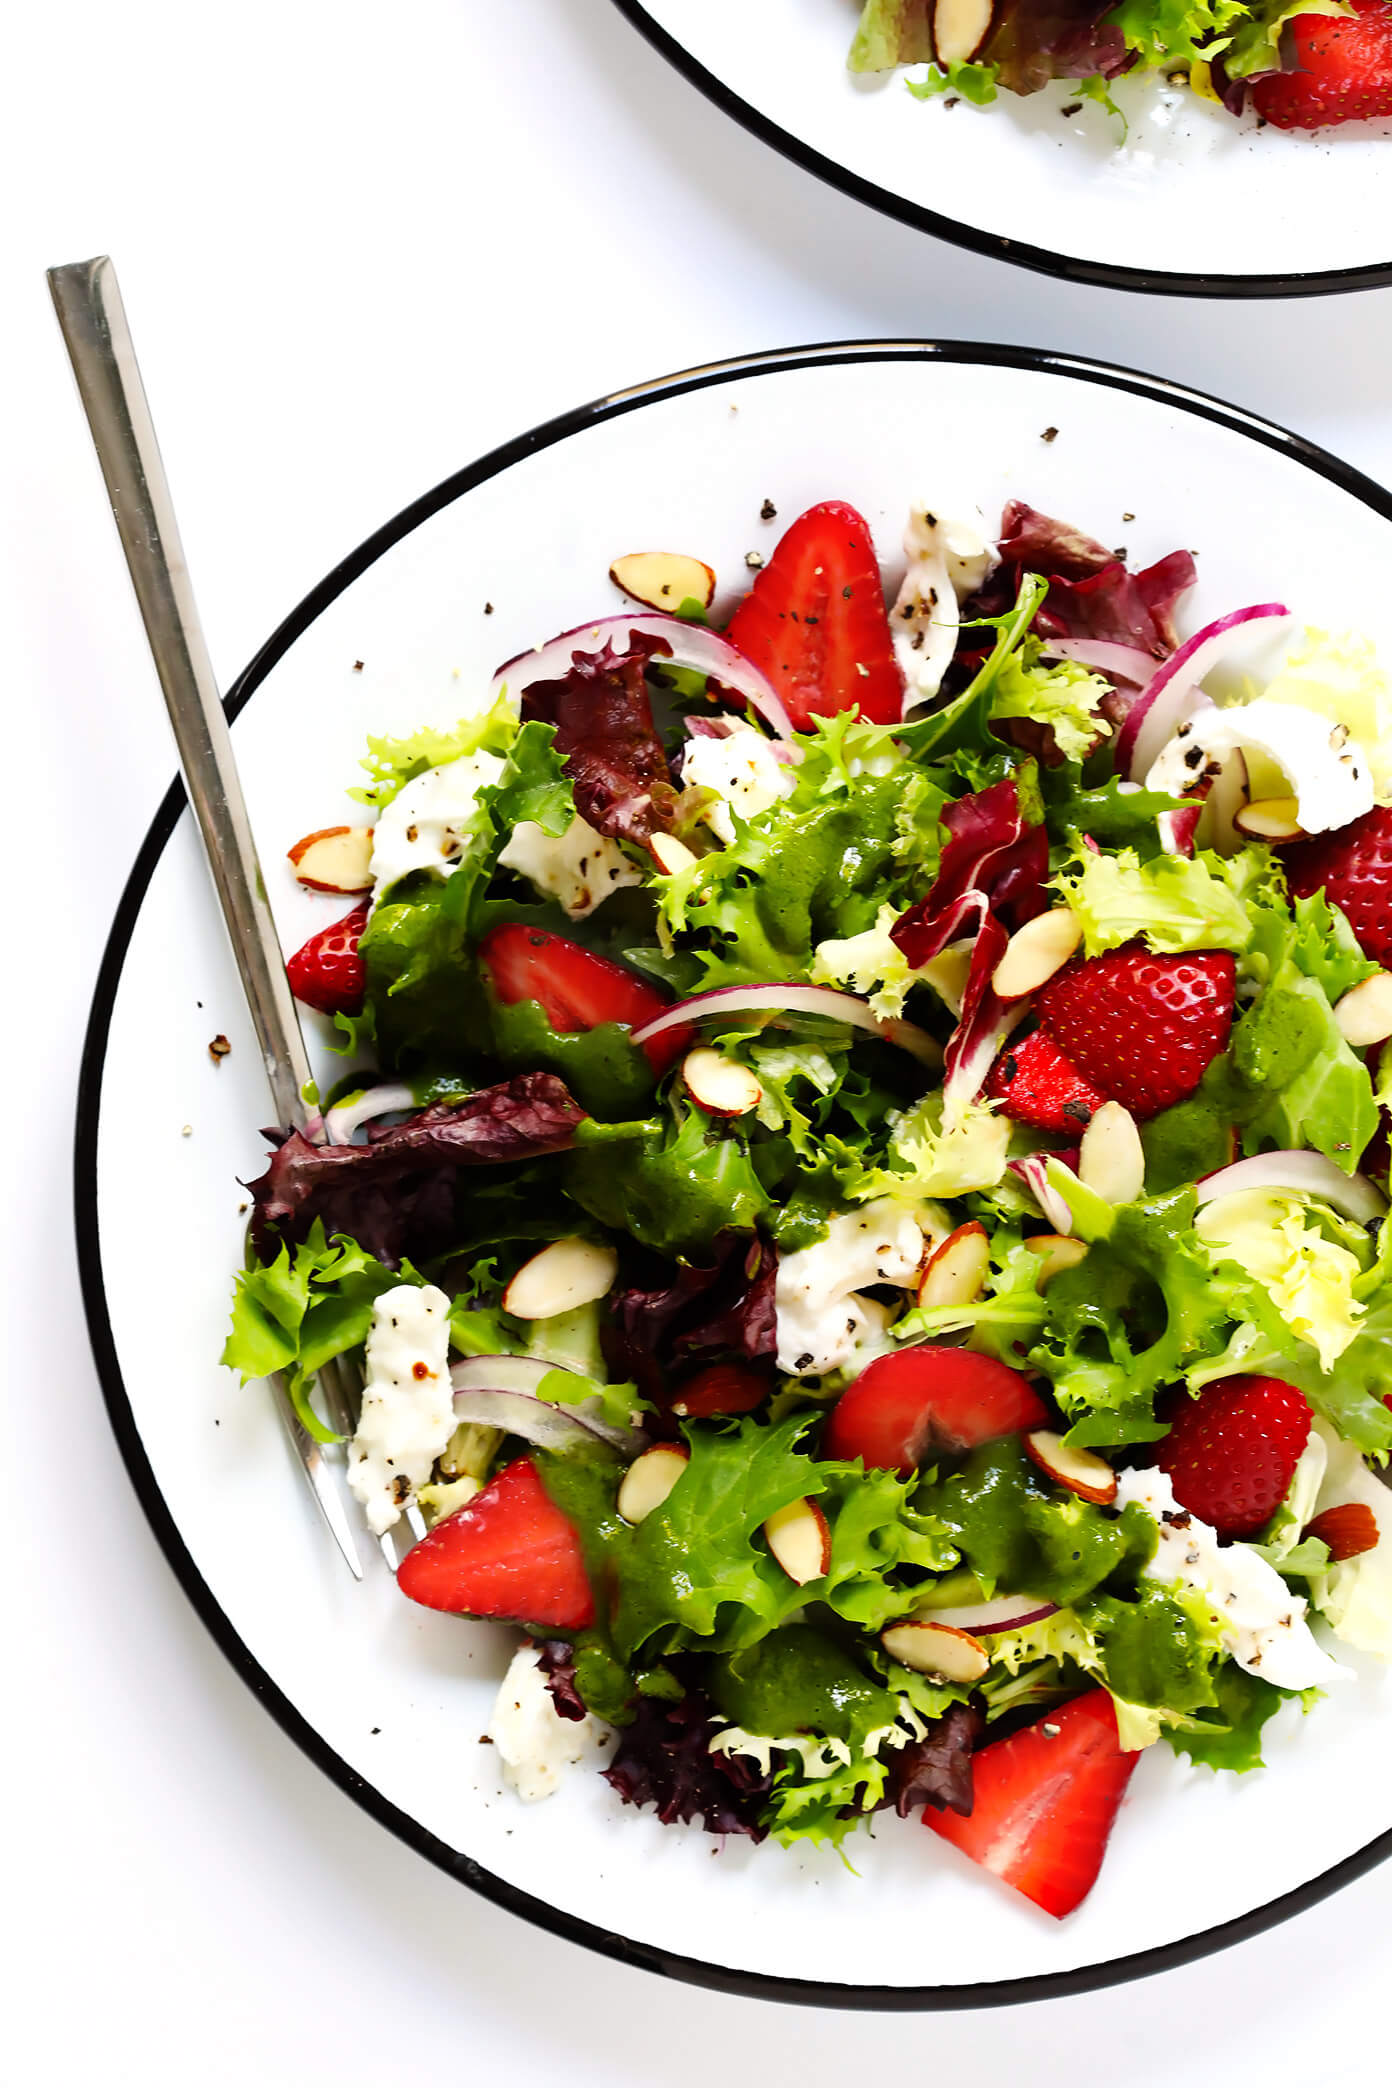 Summer Strawberry Burrata Salad with Italian Vinaigrette